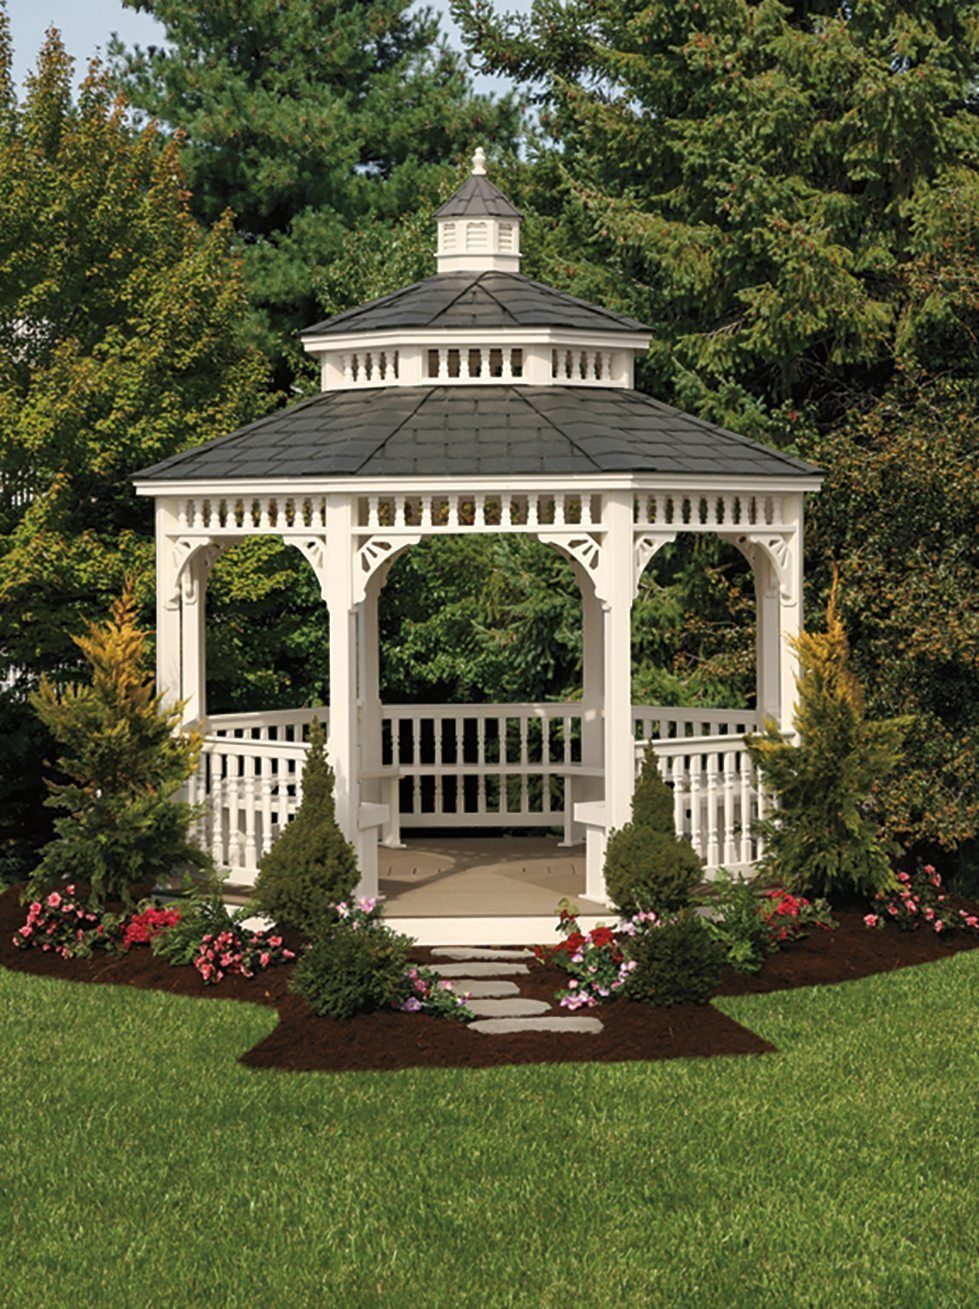 Victorian Gazebo Victorian Gazebo Gazebo Garden Structures